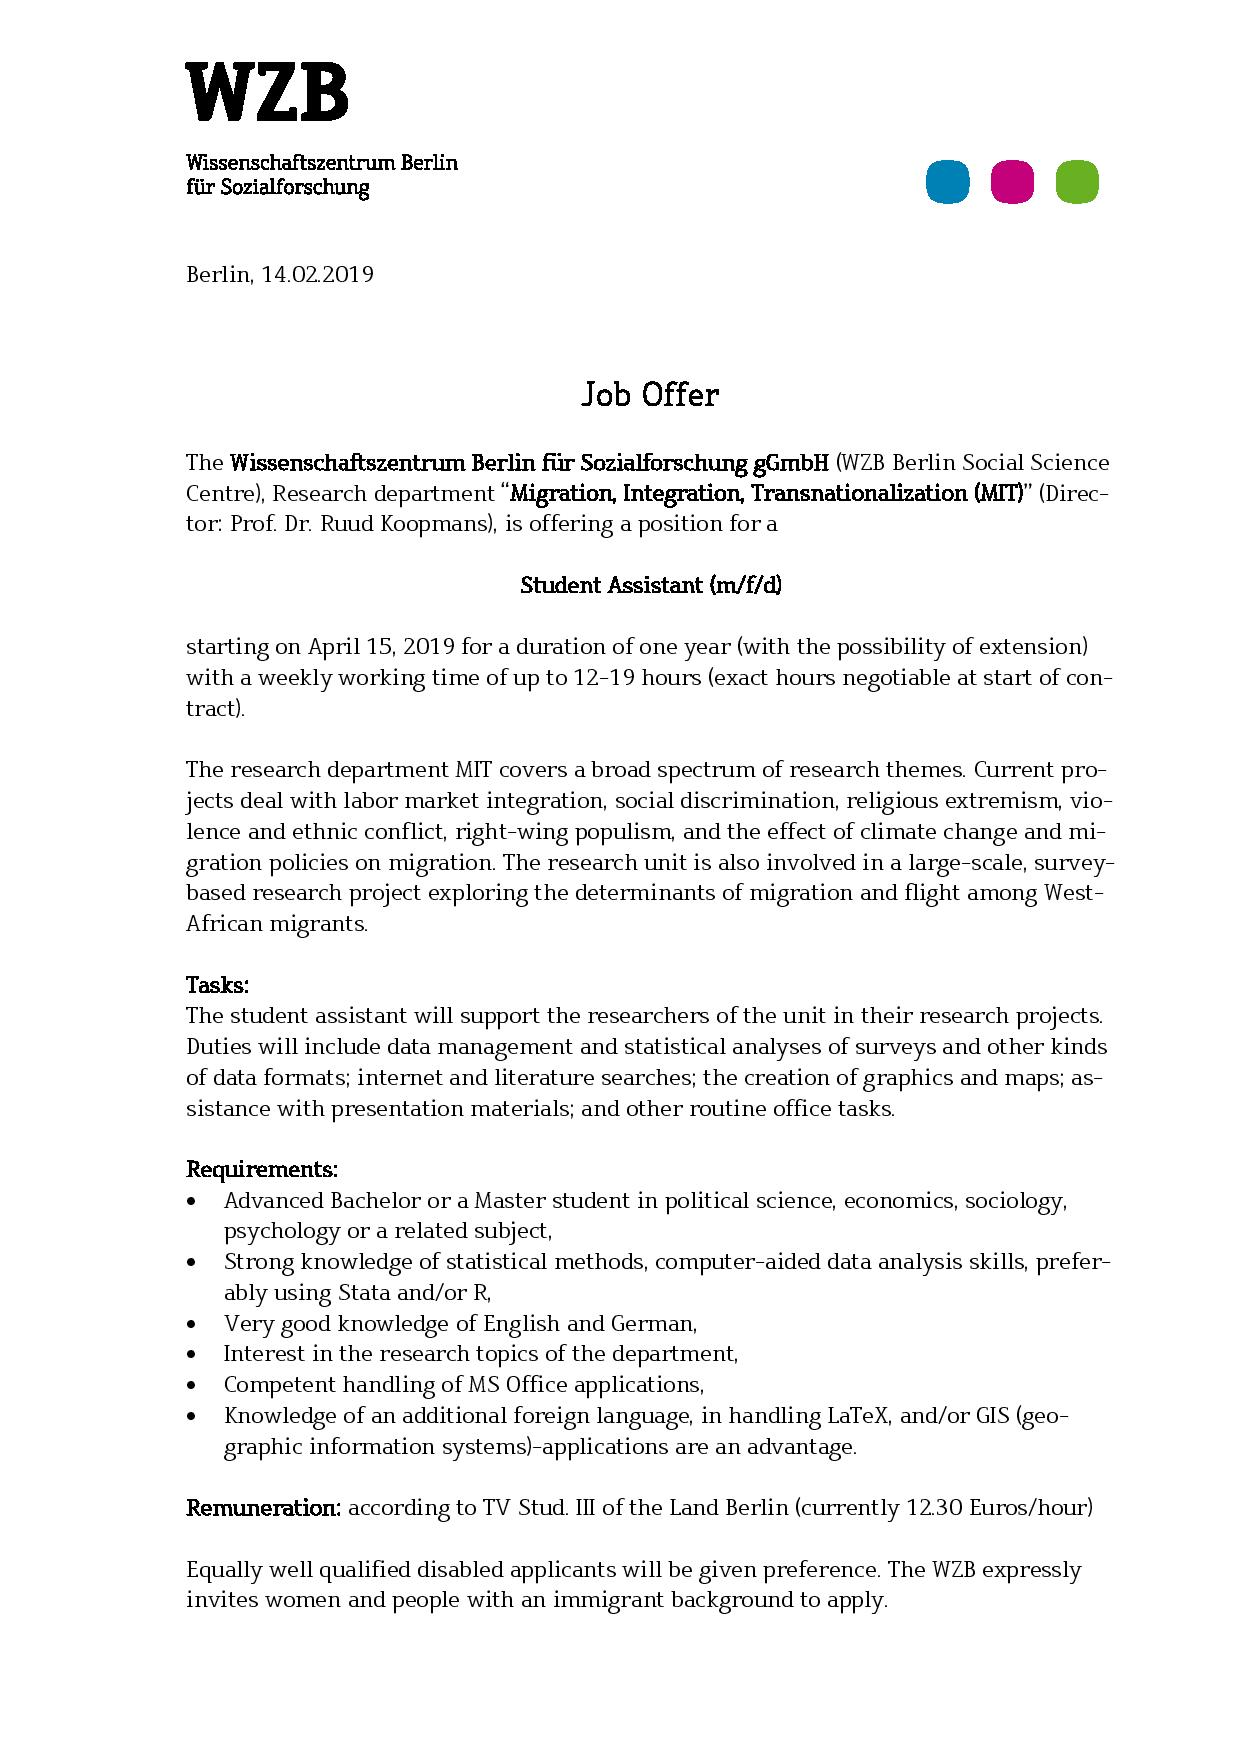 Student Assistant Position at WZB |